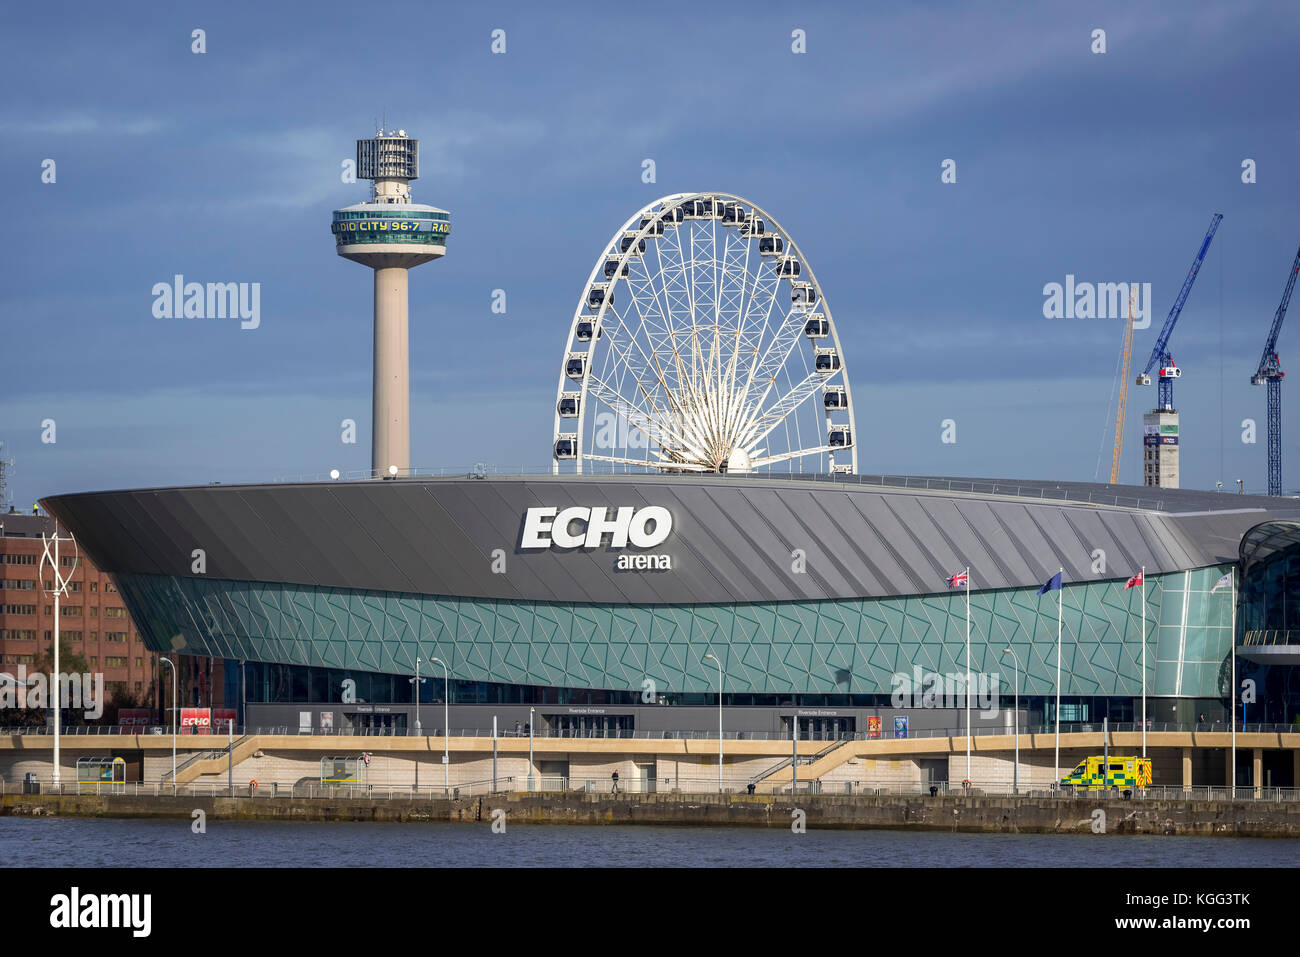 Liverpool pierhead waterfront. The Echo Arena. - Stock Image